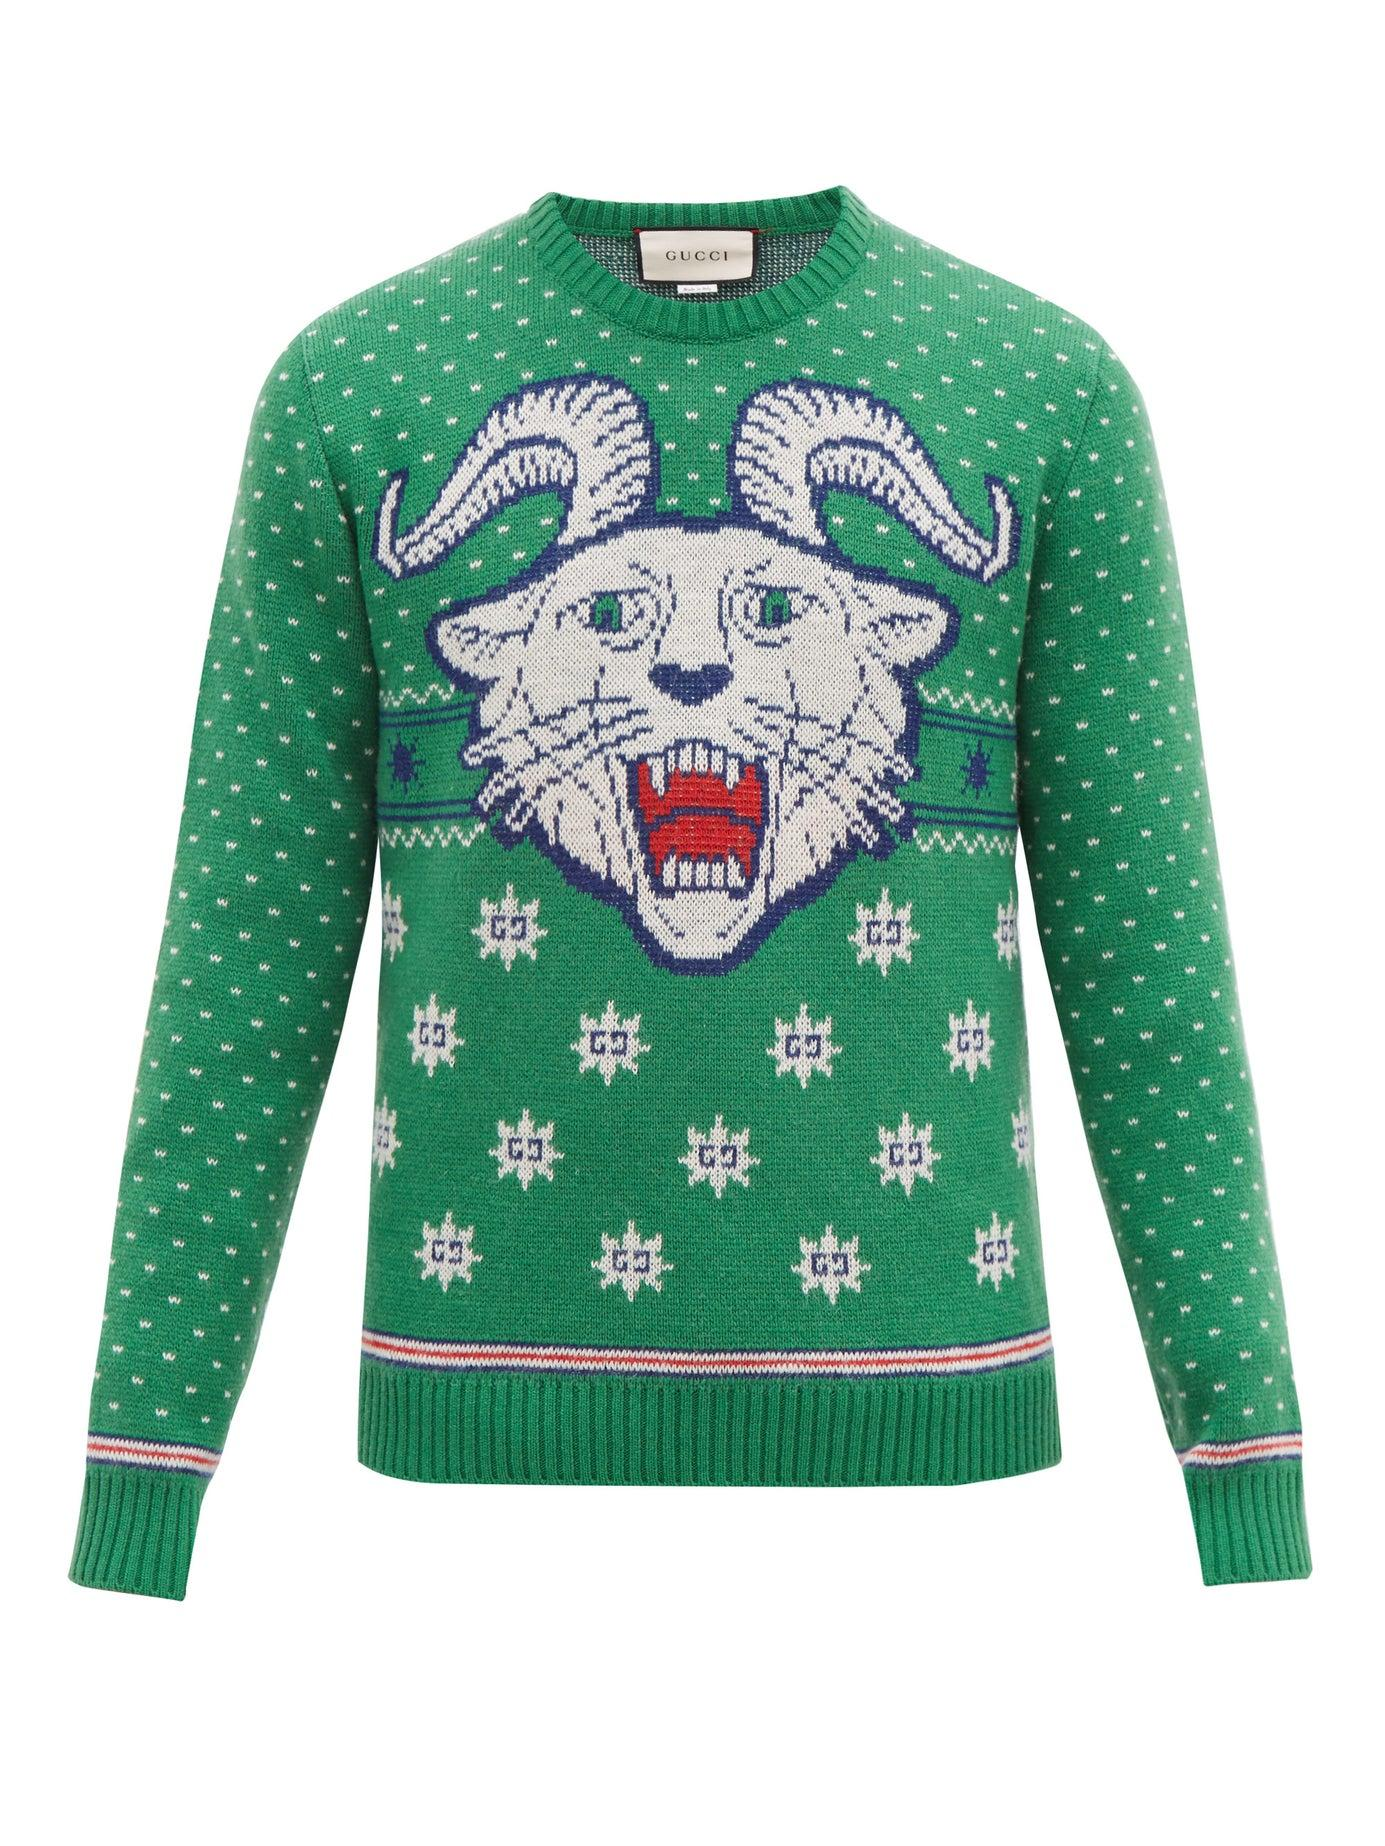 0e0436a22 Gucci - Green Tiger Jacquard Wool Blend Sweater for Men - Lyst. View  fullscreen